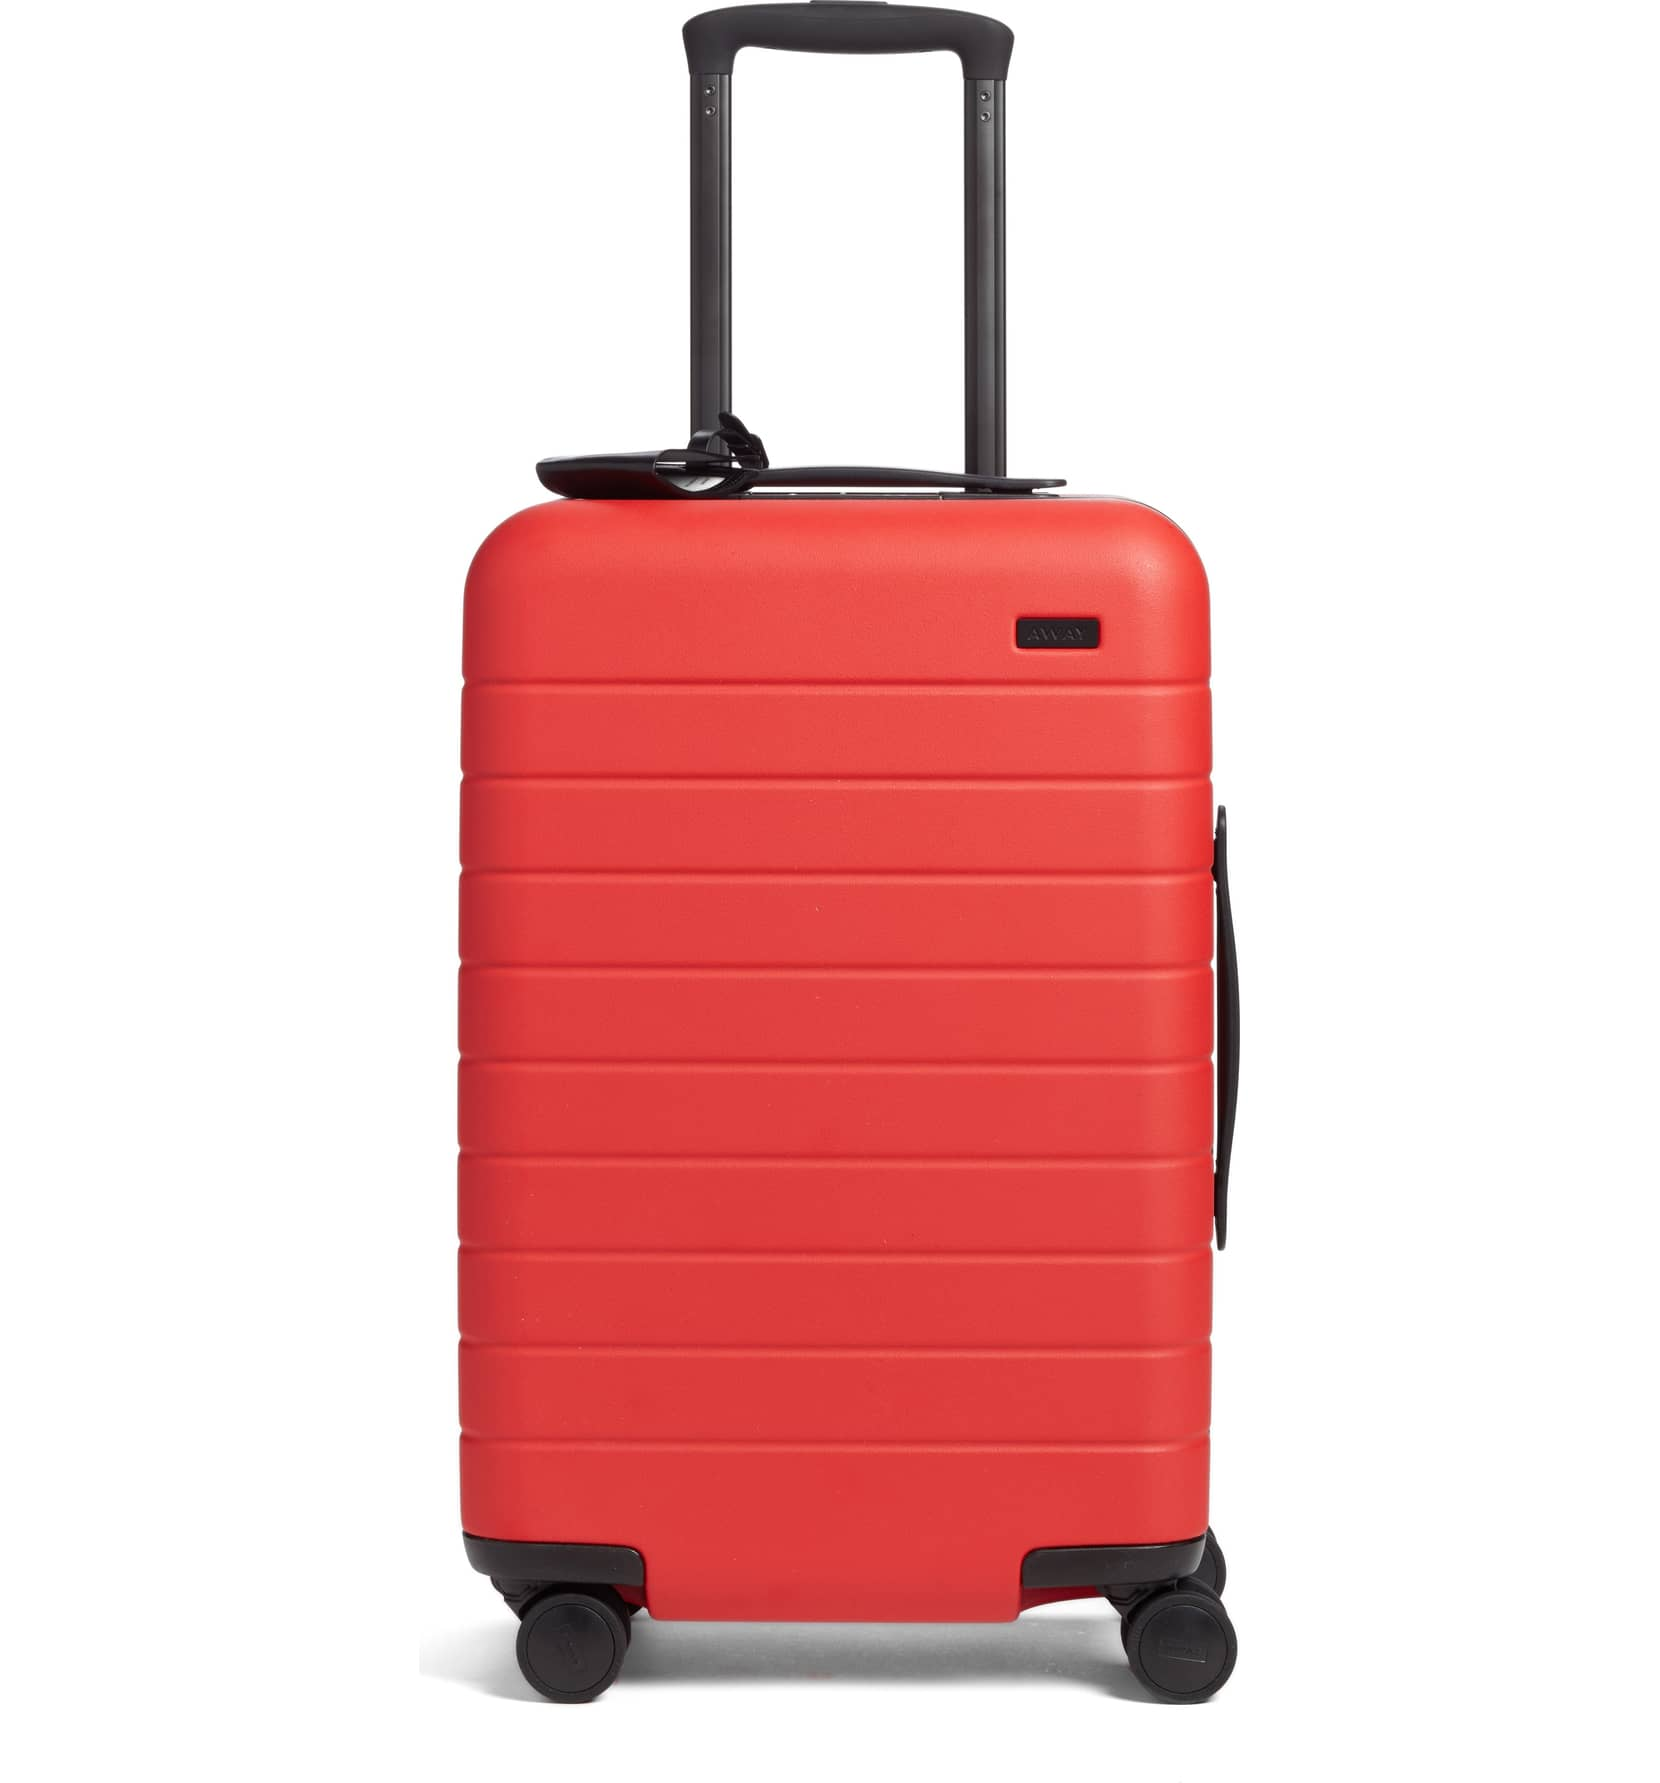 Away Luggage at Nordstrom, Red Carry-On